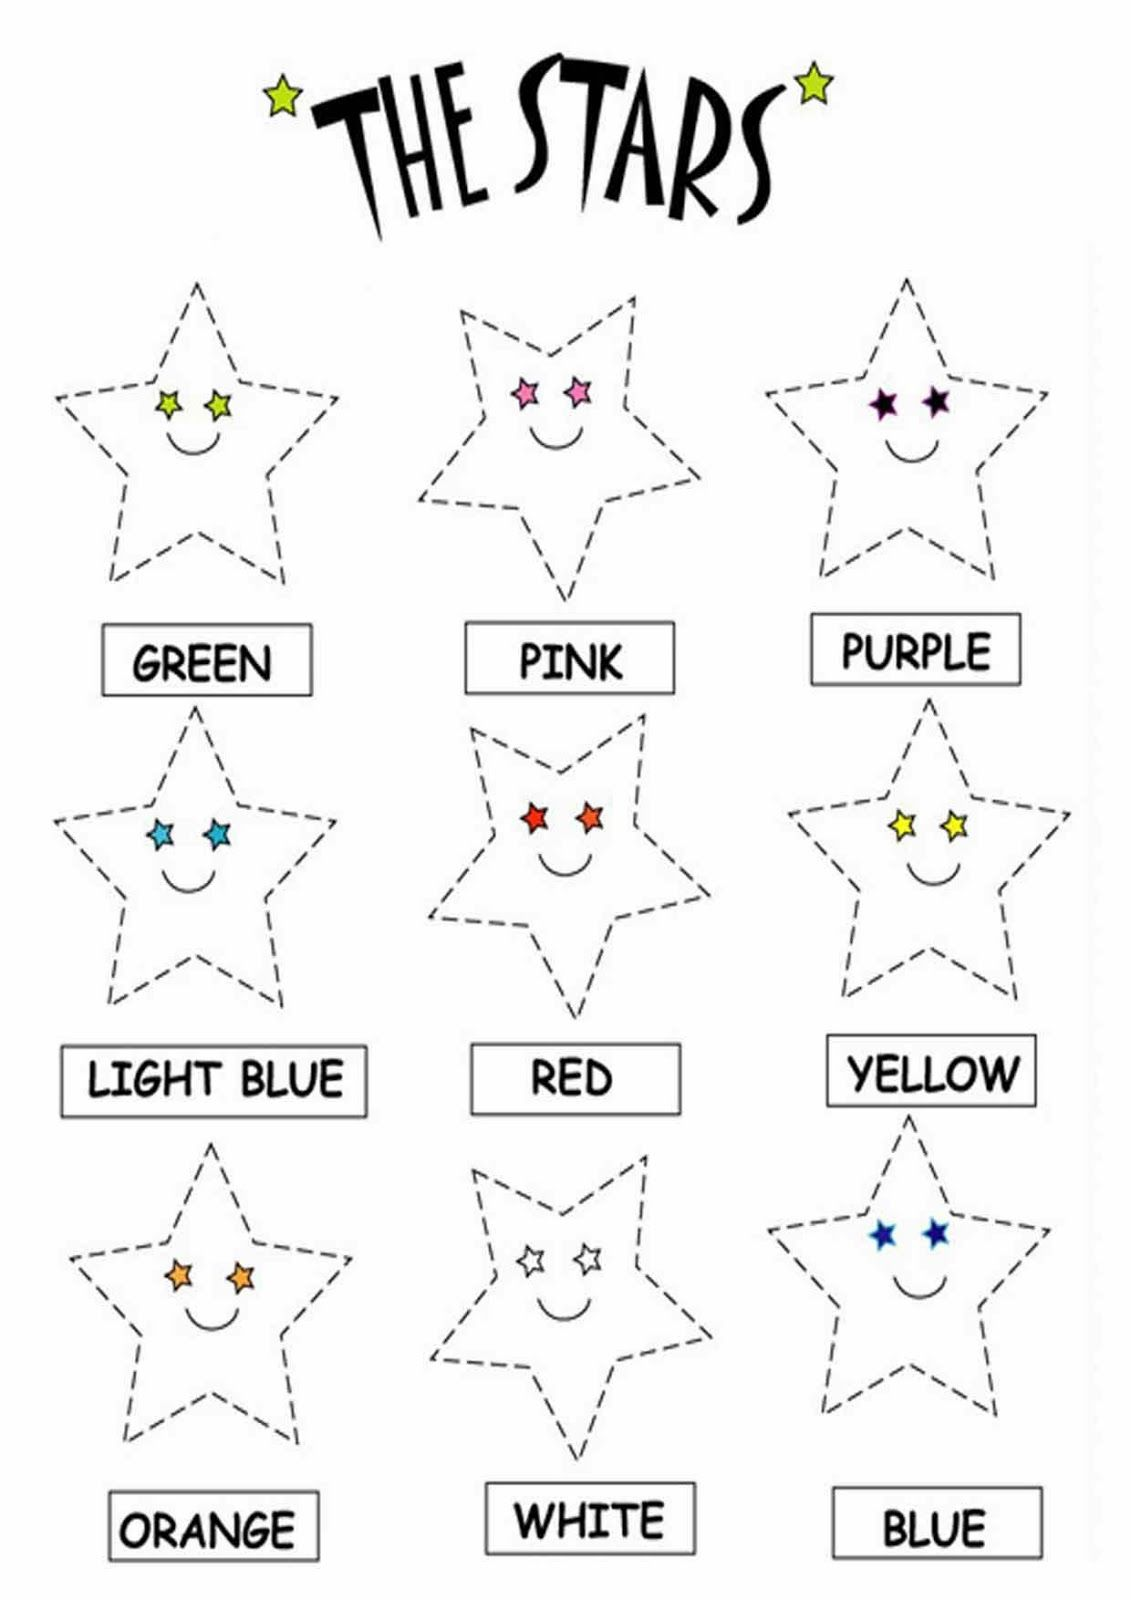 color the stars worksheets download free printable and interactive online color the stars. Black Bedroom Furniture Sets. Home Design Ideas